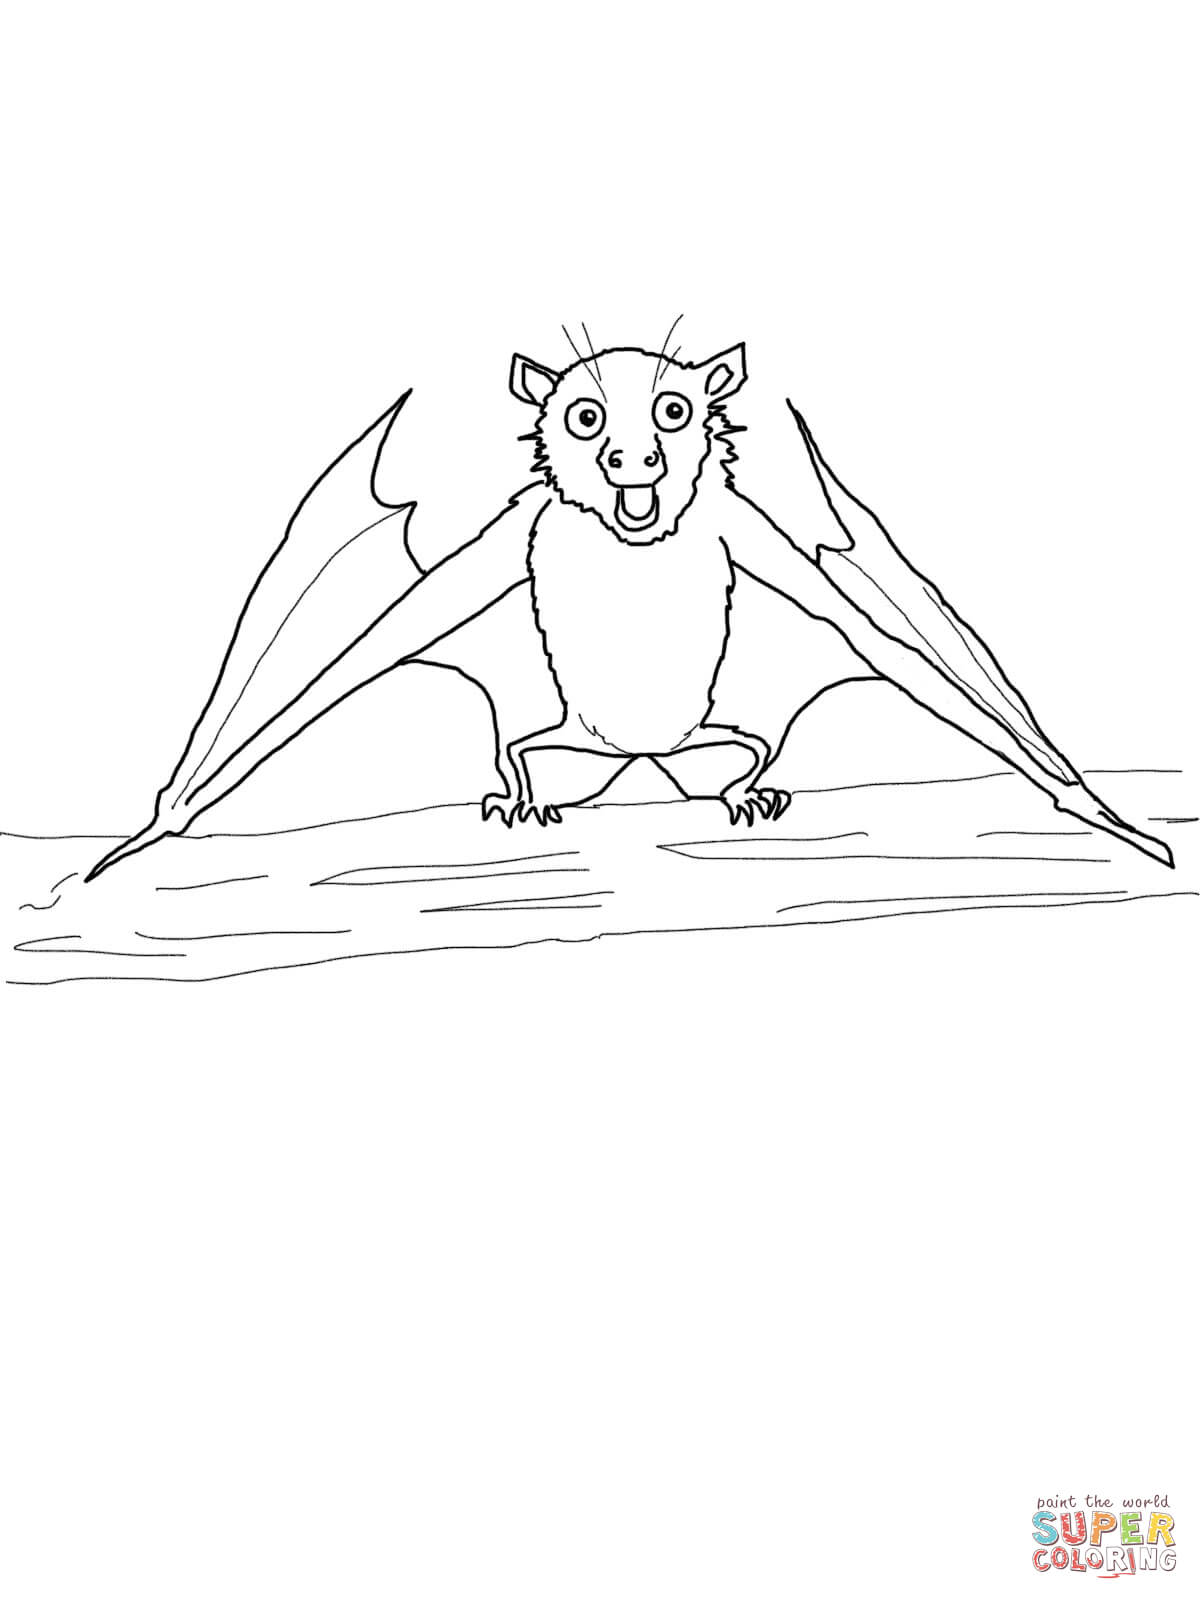 Stellaluna Fruit Bat Coloring Page